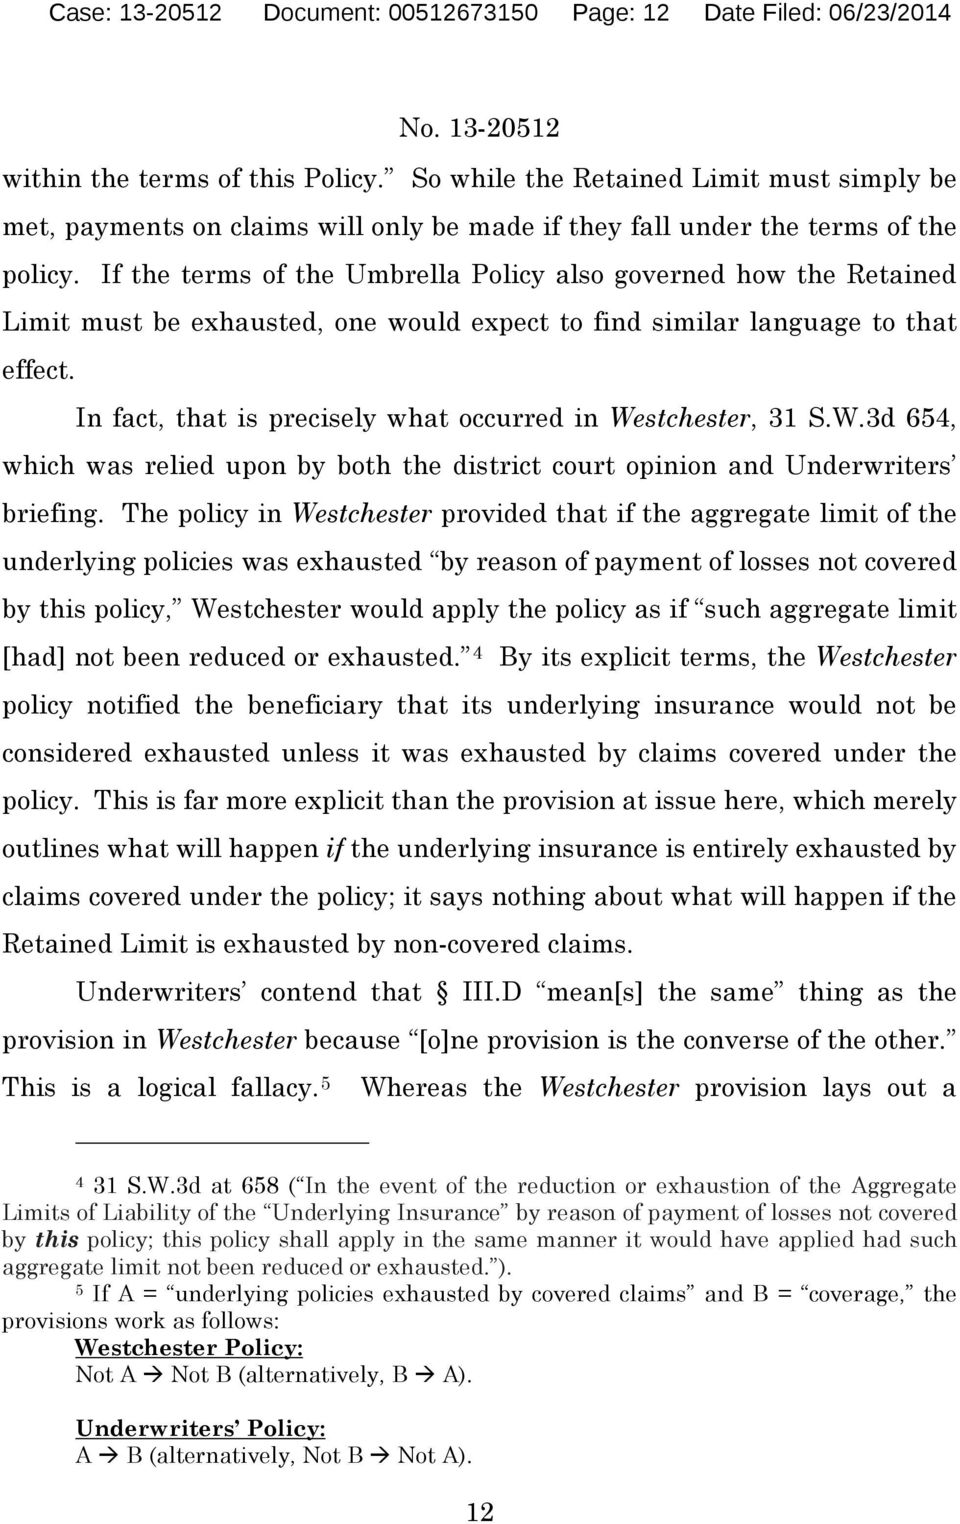 If the terms of the Umbrella Policy also governed how the Retained Limit must be exhausted, one would expect to find similar language to that effect.